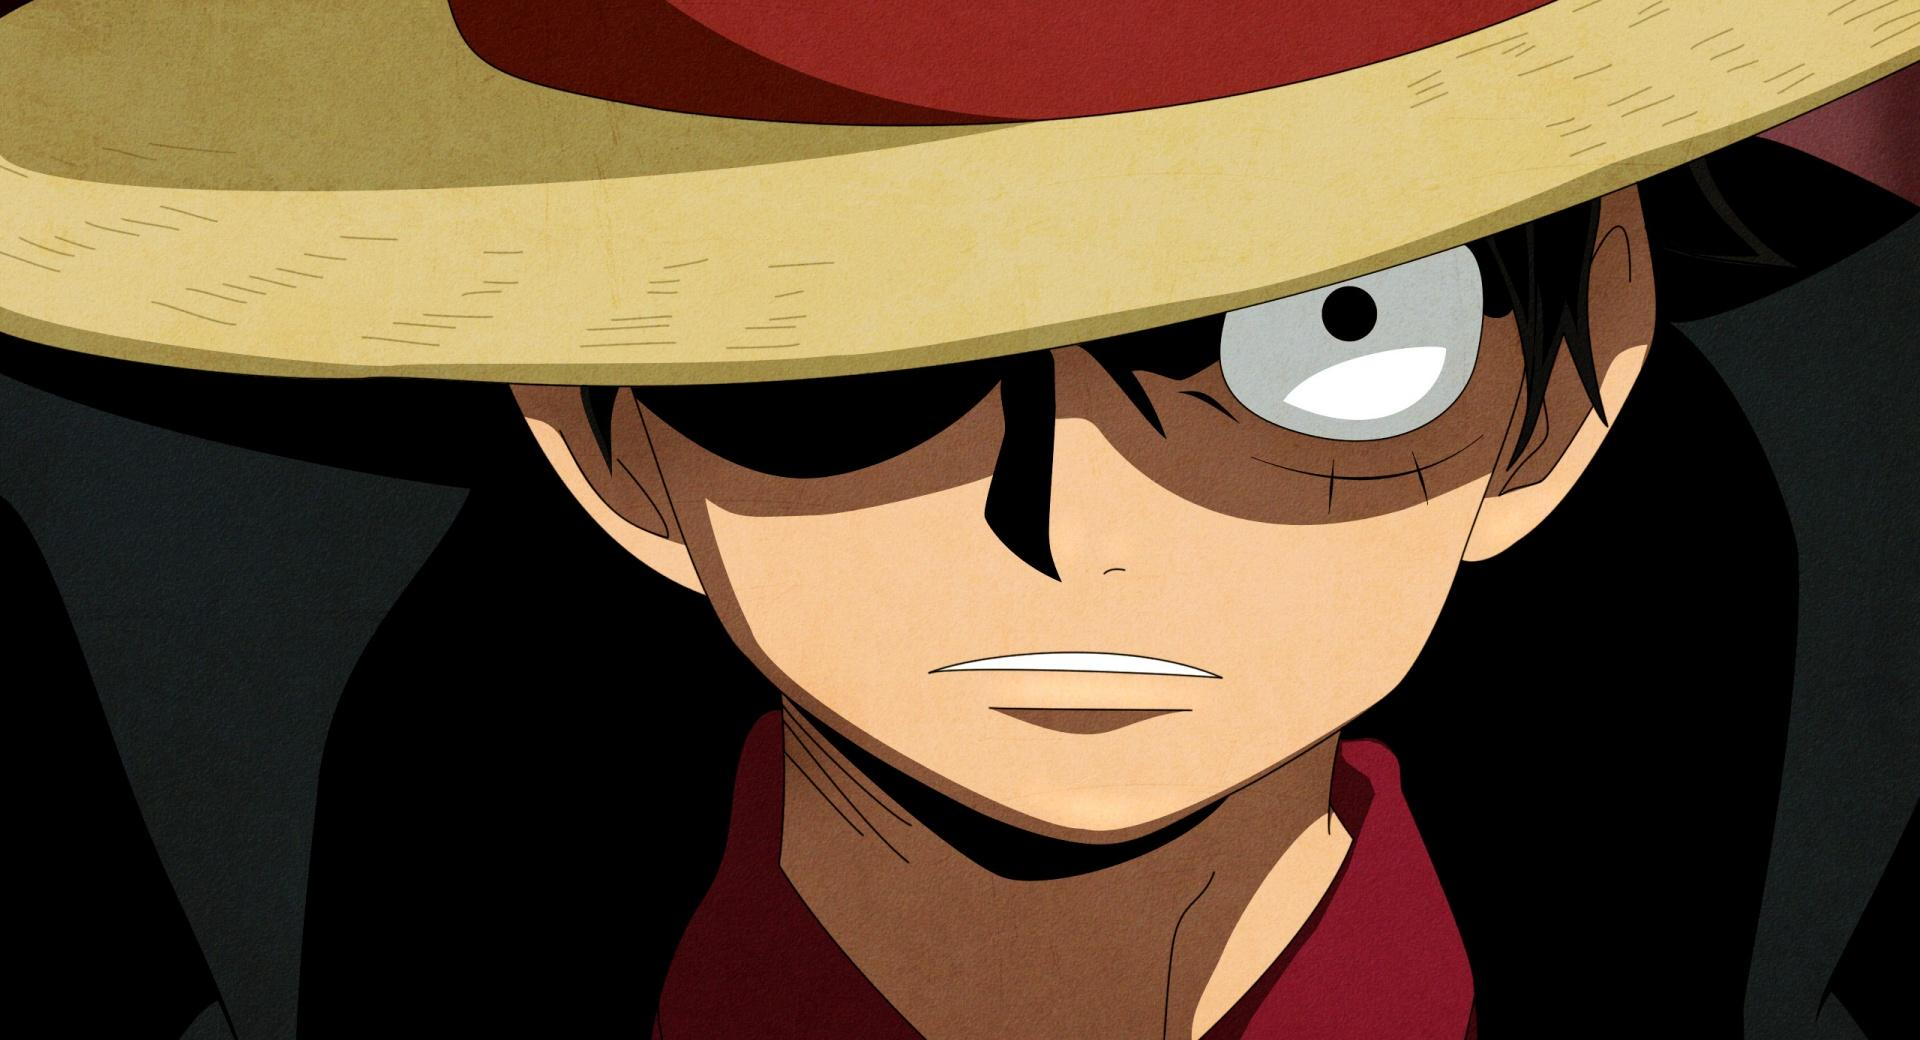 One Piece, Luffy at 1024 x 1024 iPad size wallpapers HD quality